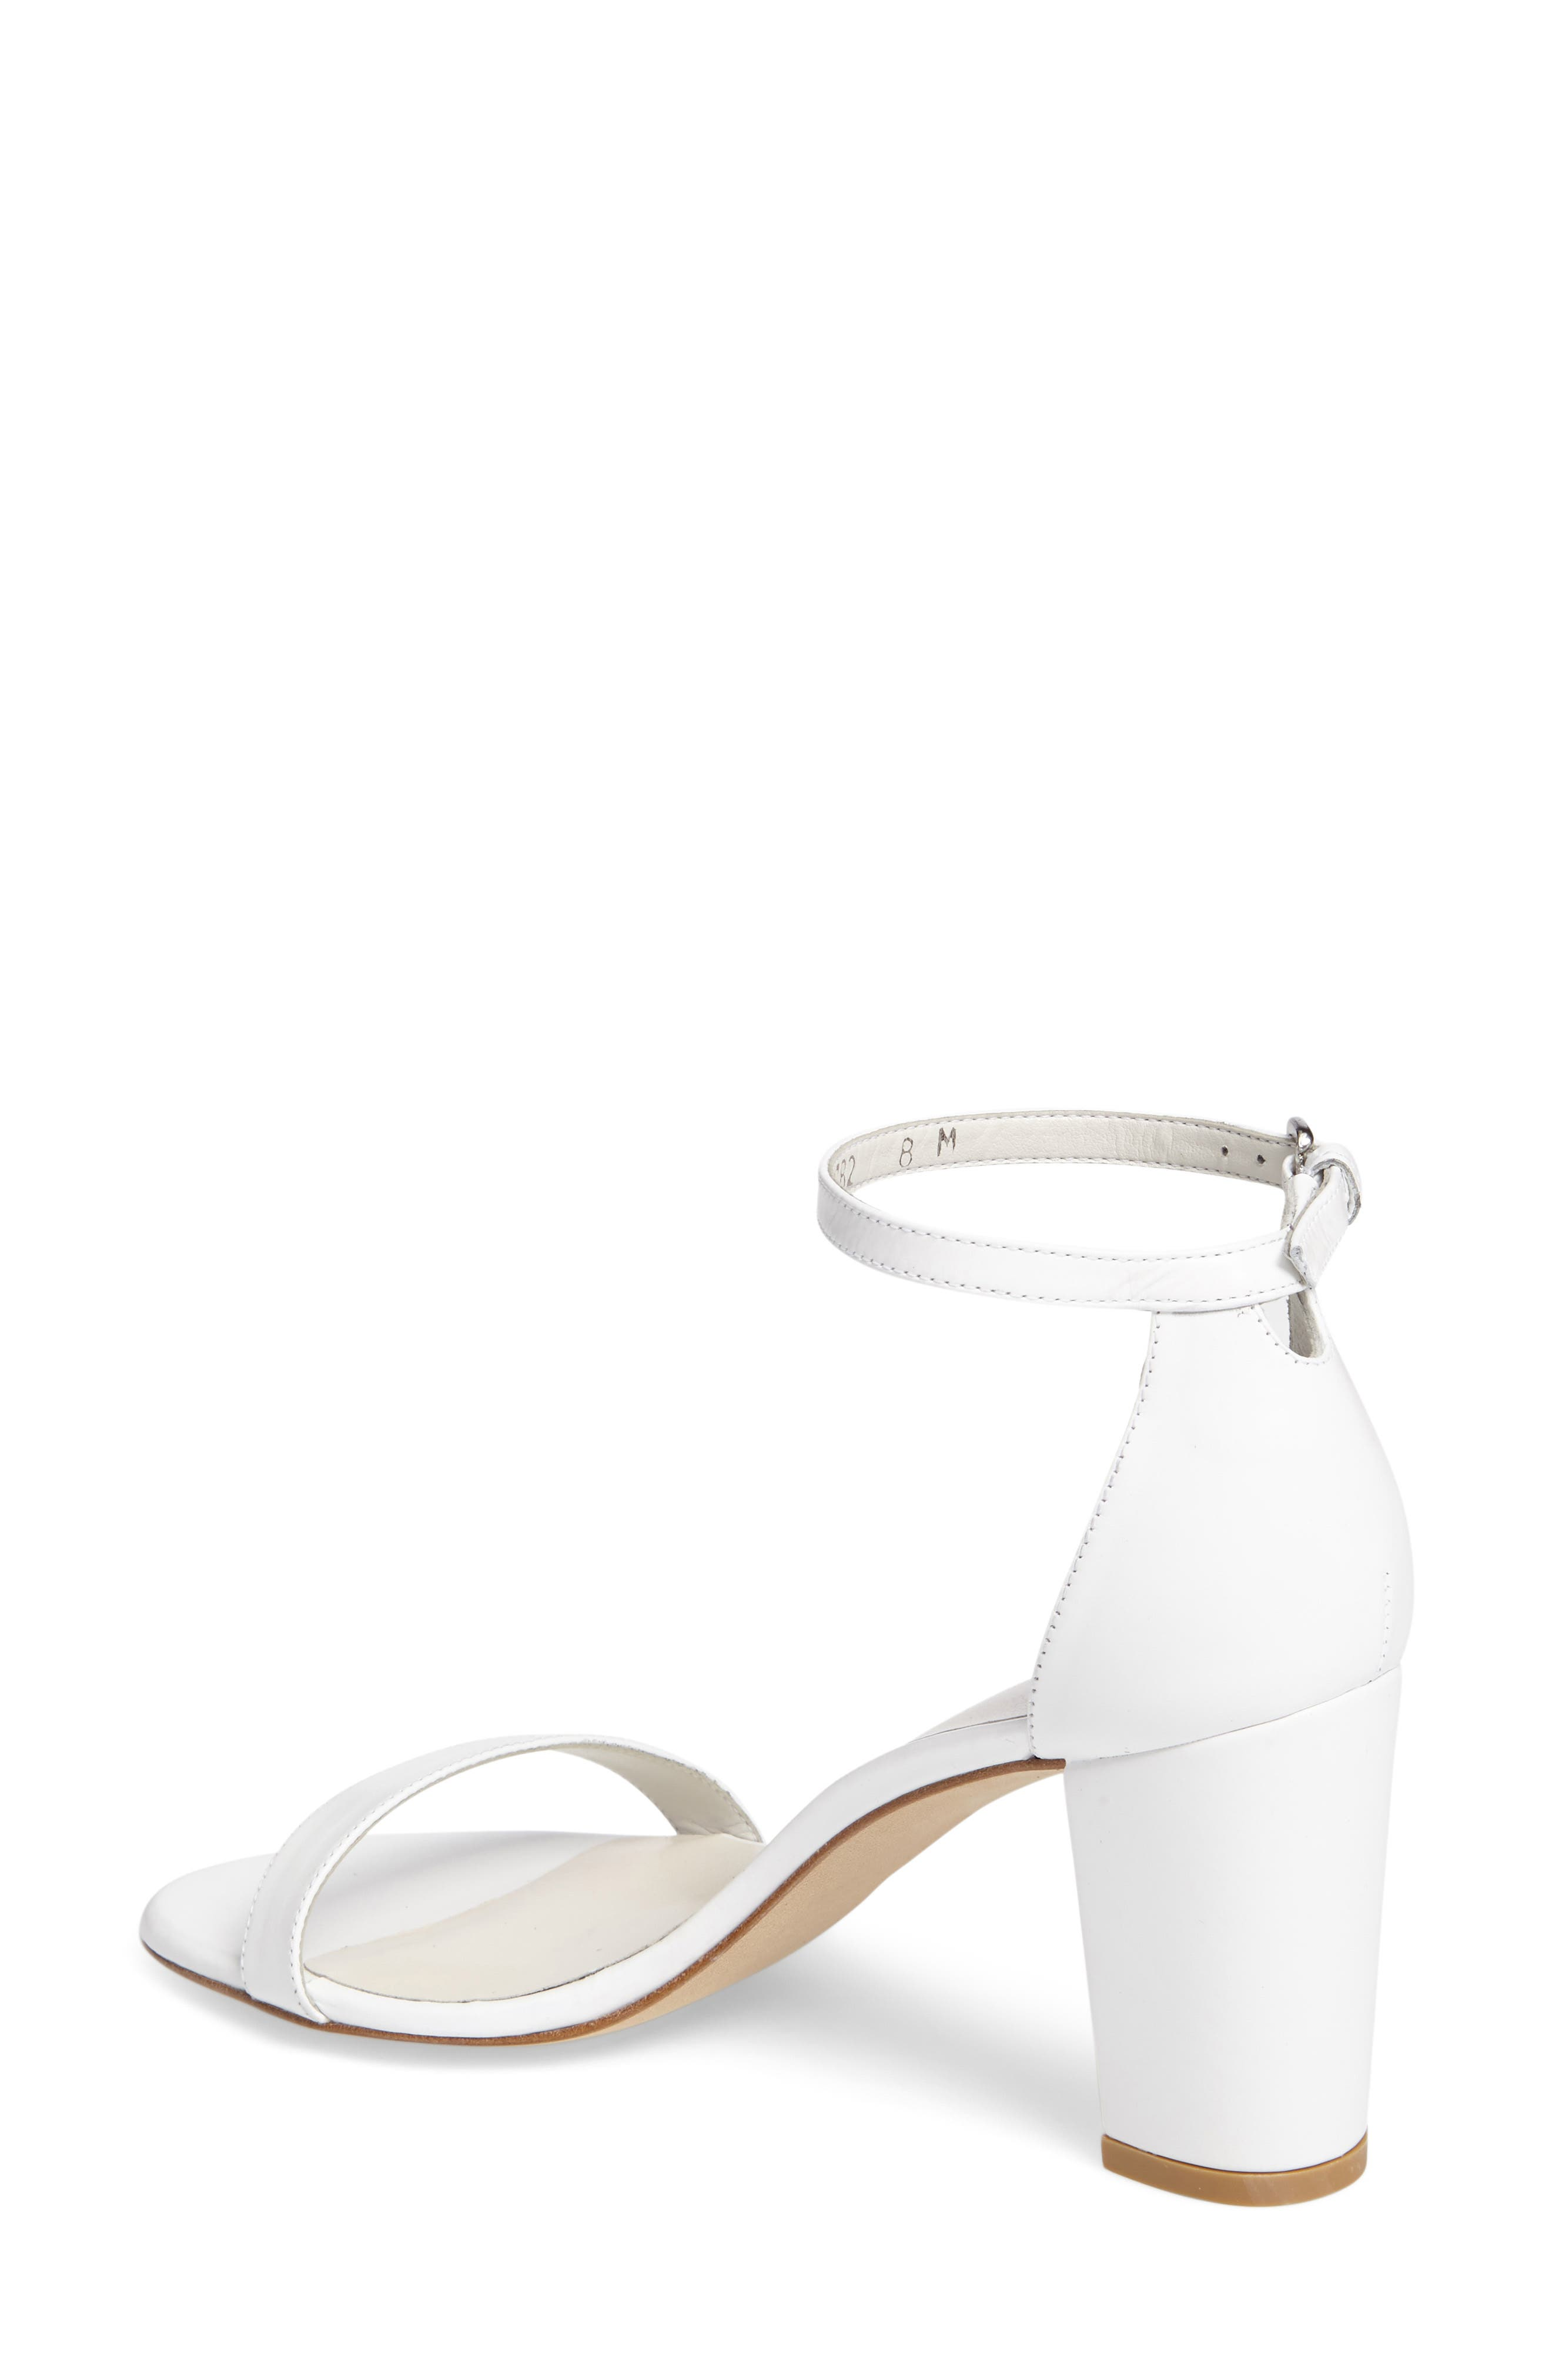 NearlyNude Ankle Strap Sandal,                             Alternate thumbnail 42, color,